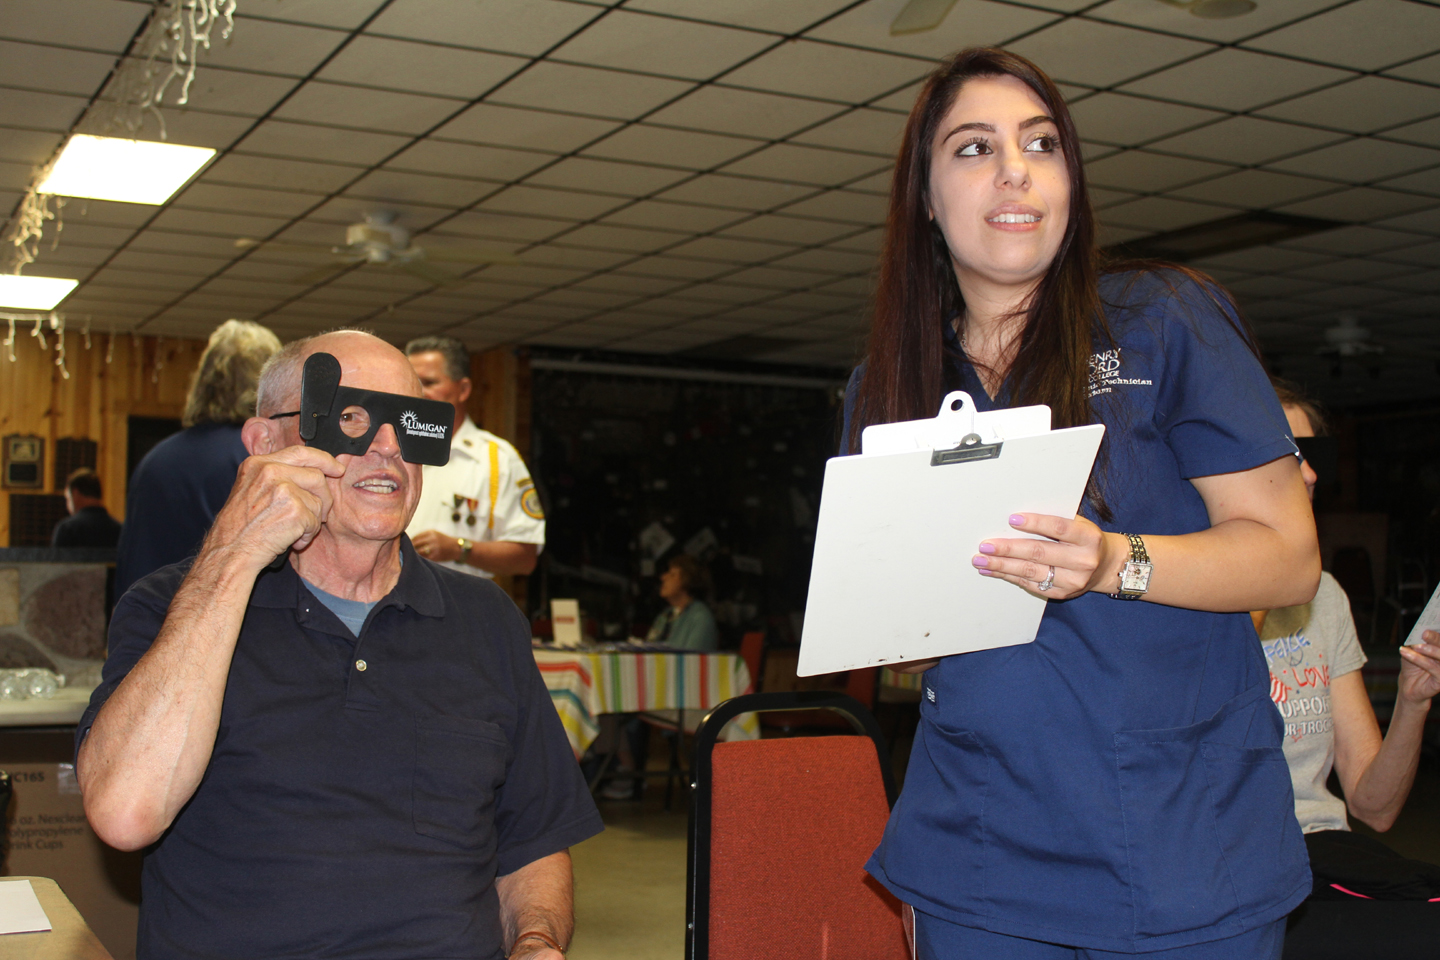 Anyone who wants a free eye exam will be able to get one on Oct. 13 at American Legion Post 108. Photo by C.J. Carnacchio.